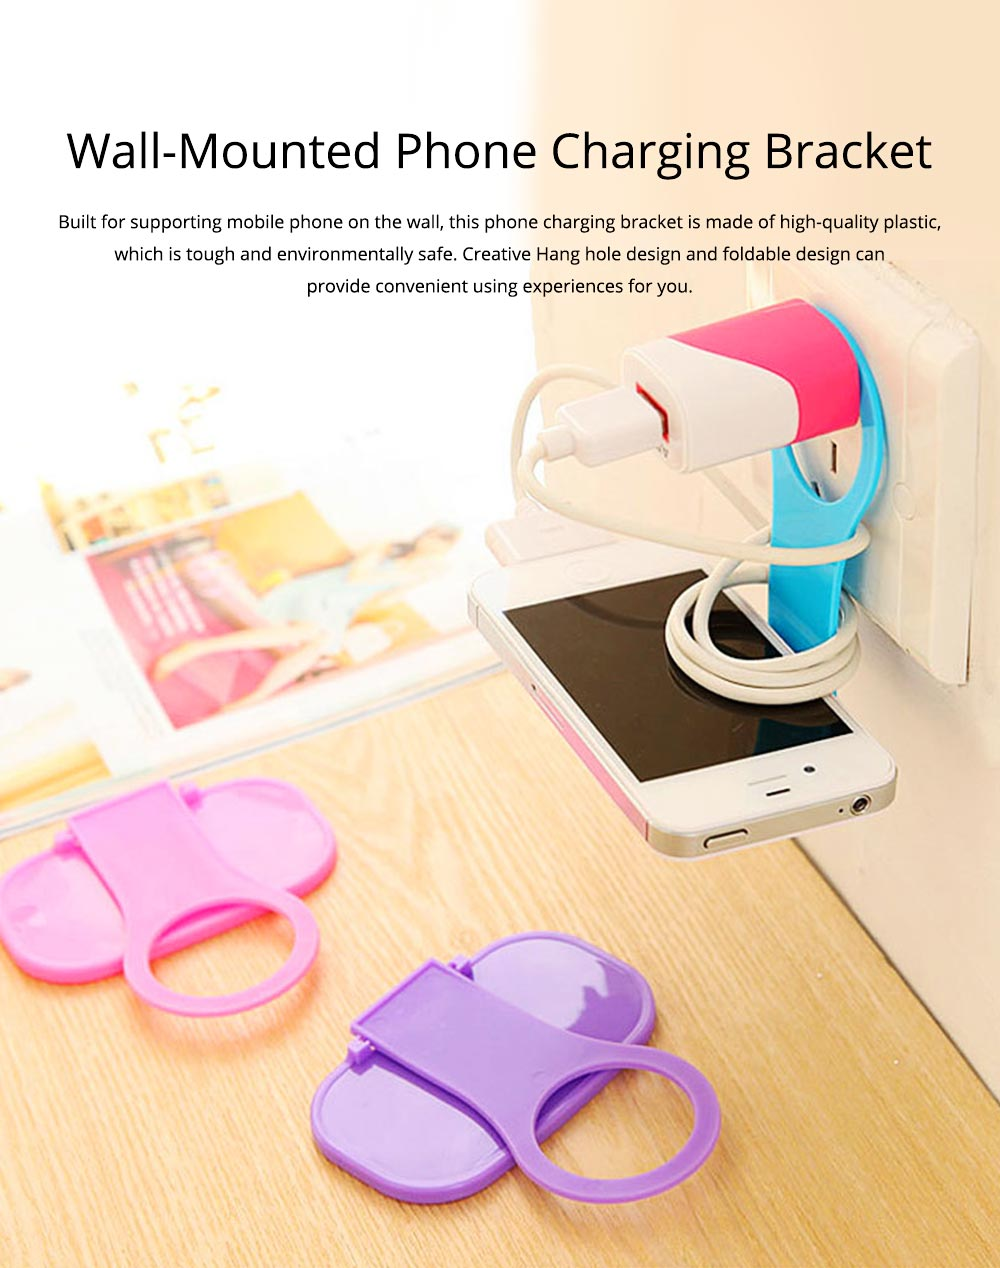 Creative Foldable Mobile Phone Charging Bracket Holder, Plastic Smart Phone Immobile Wall-Mounted Supporter Hanger 0